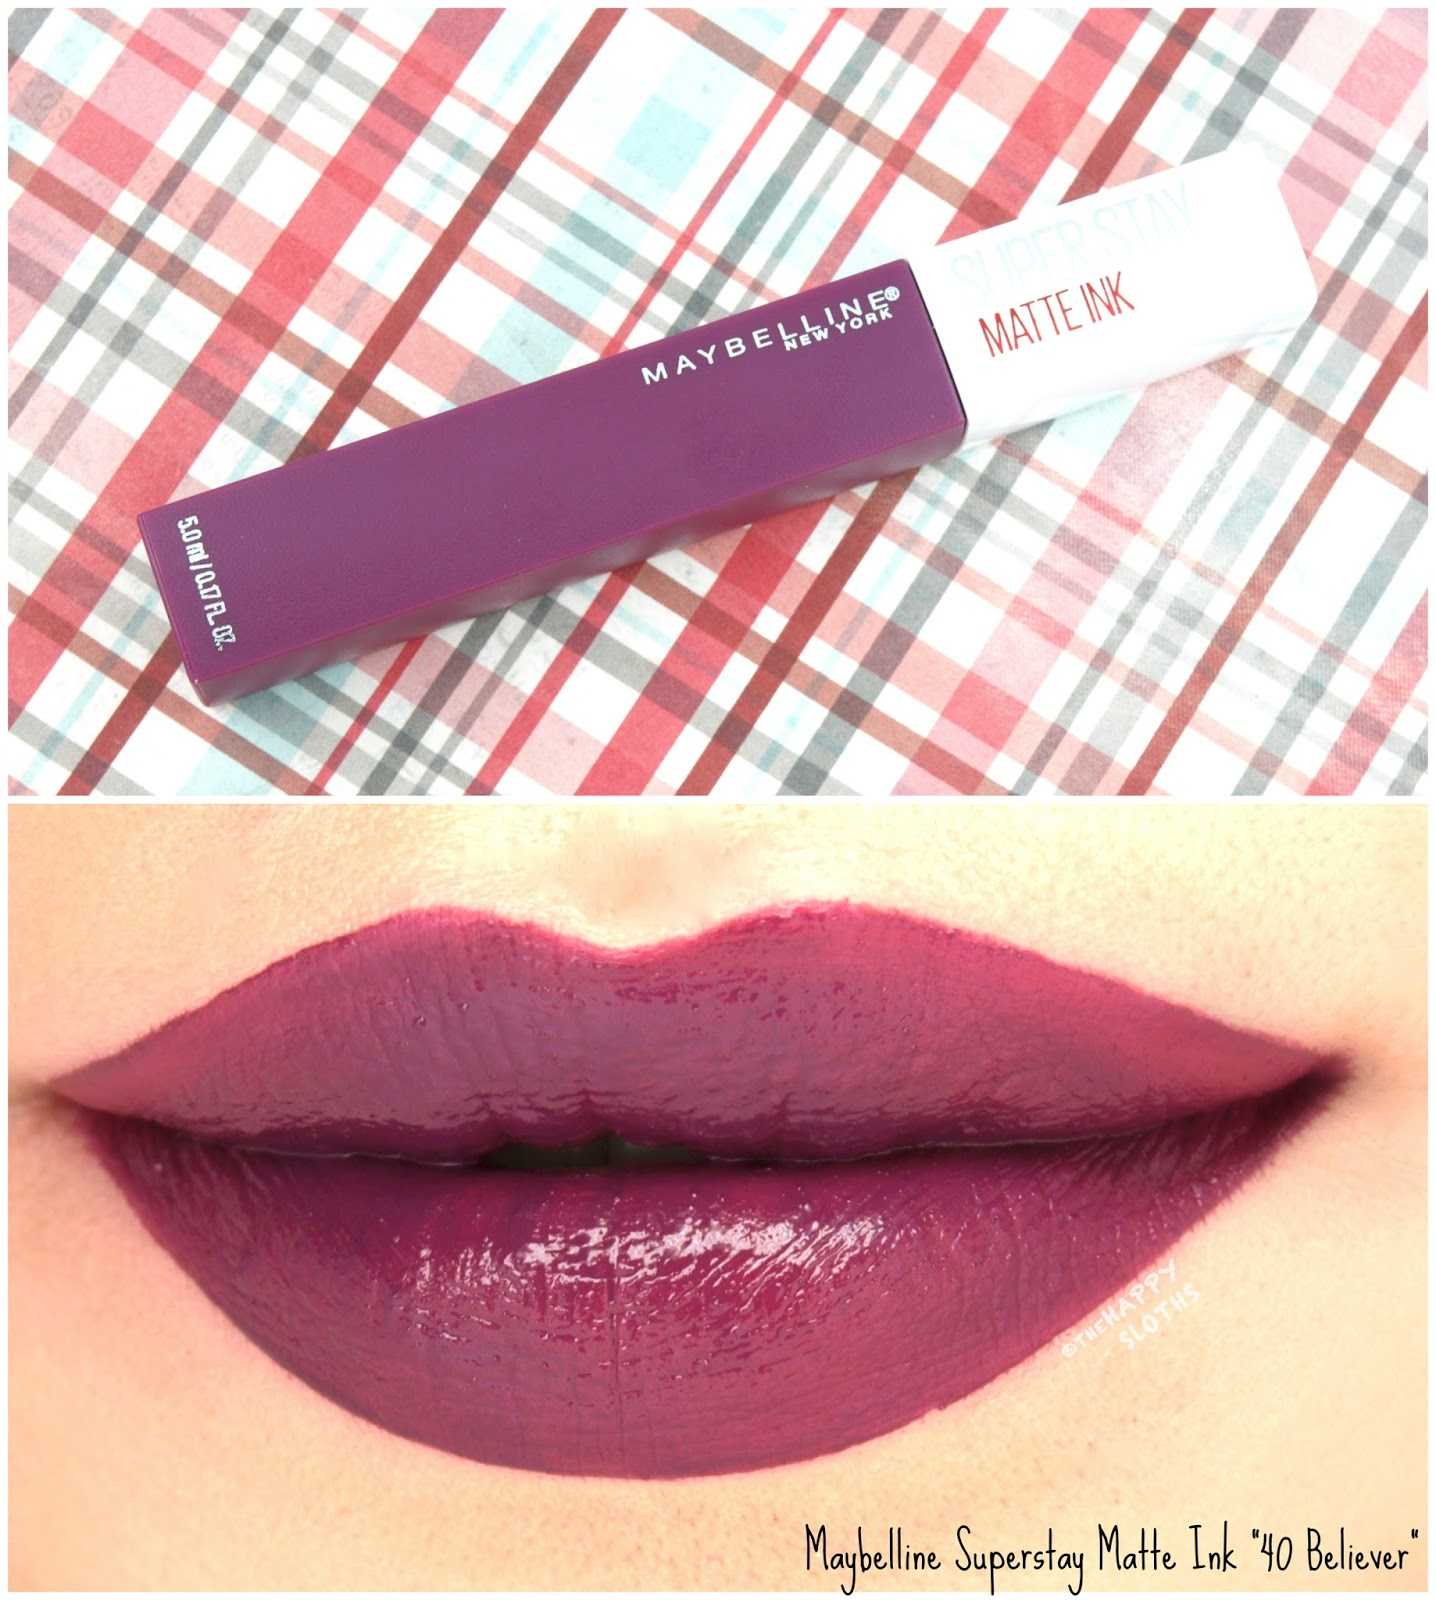 Maybelline Superstay Matte Ink Liquid Lipstick | 40 Believer: Review and Swatches